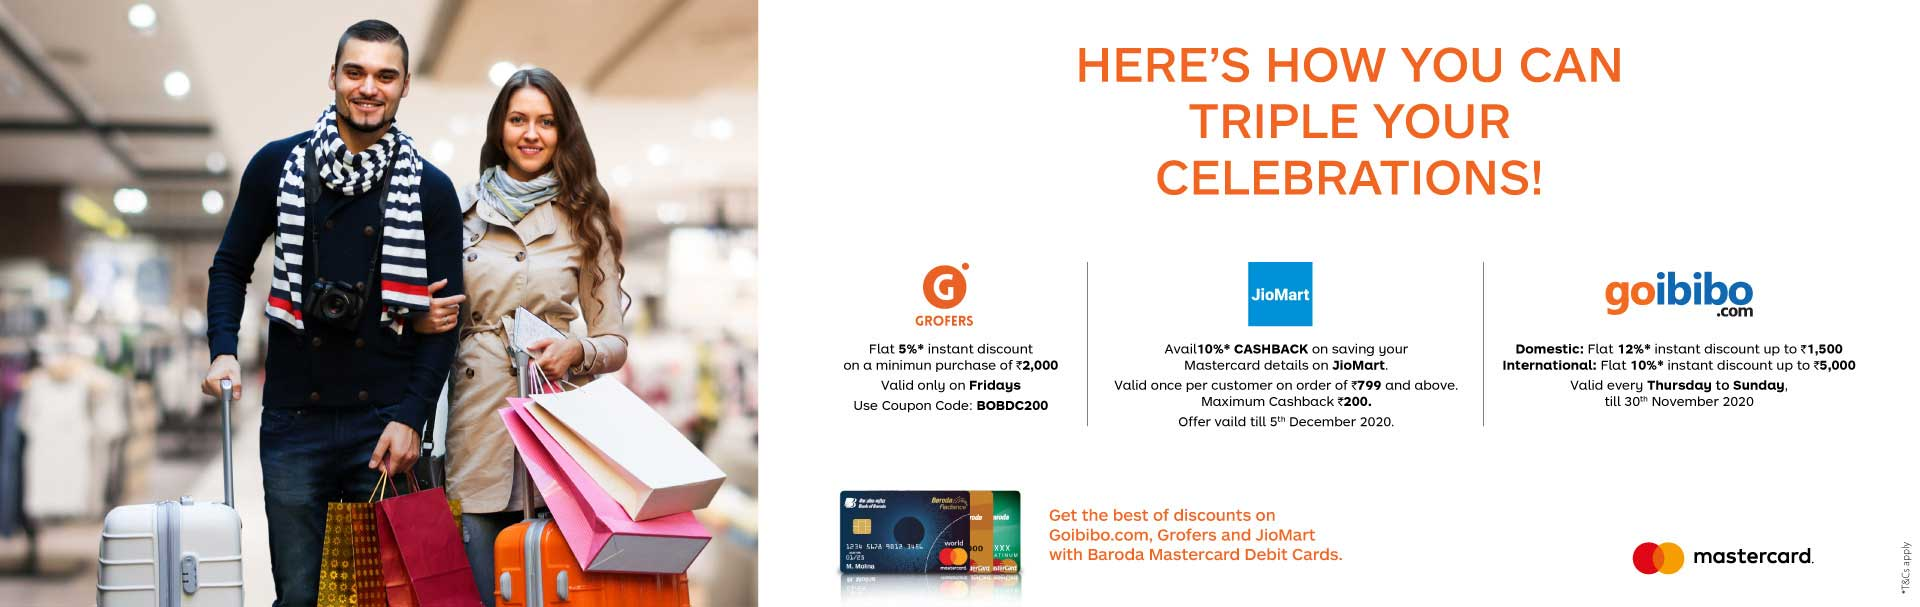 mastercard three offers